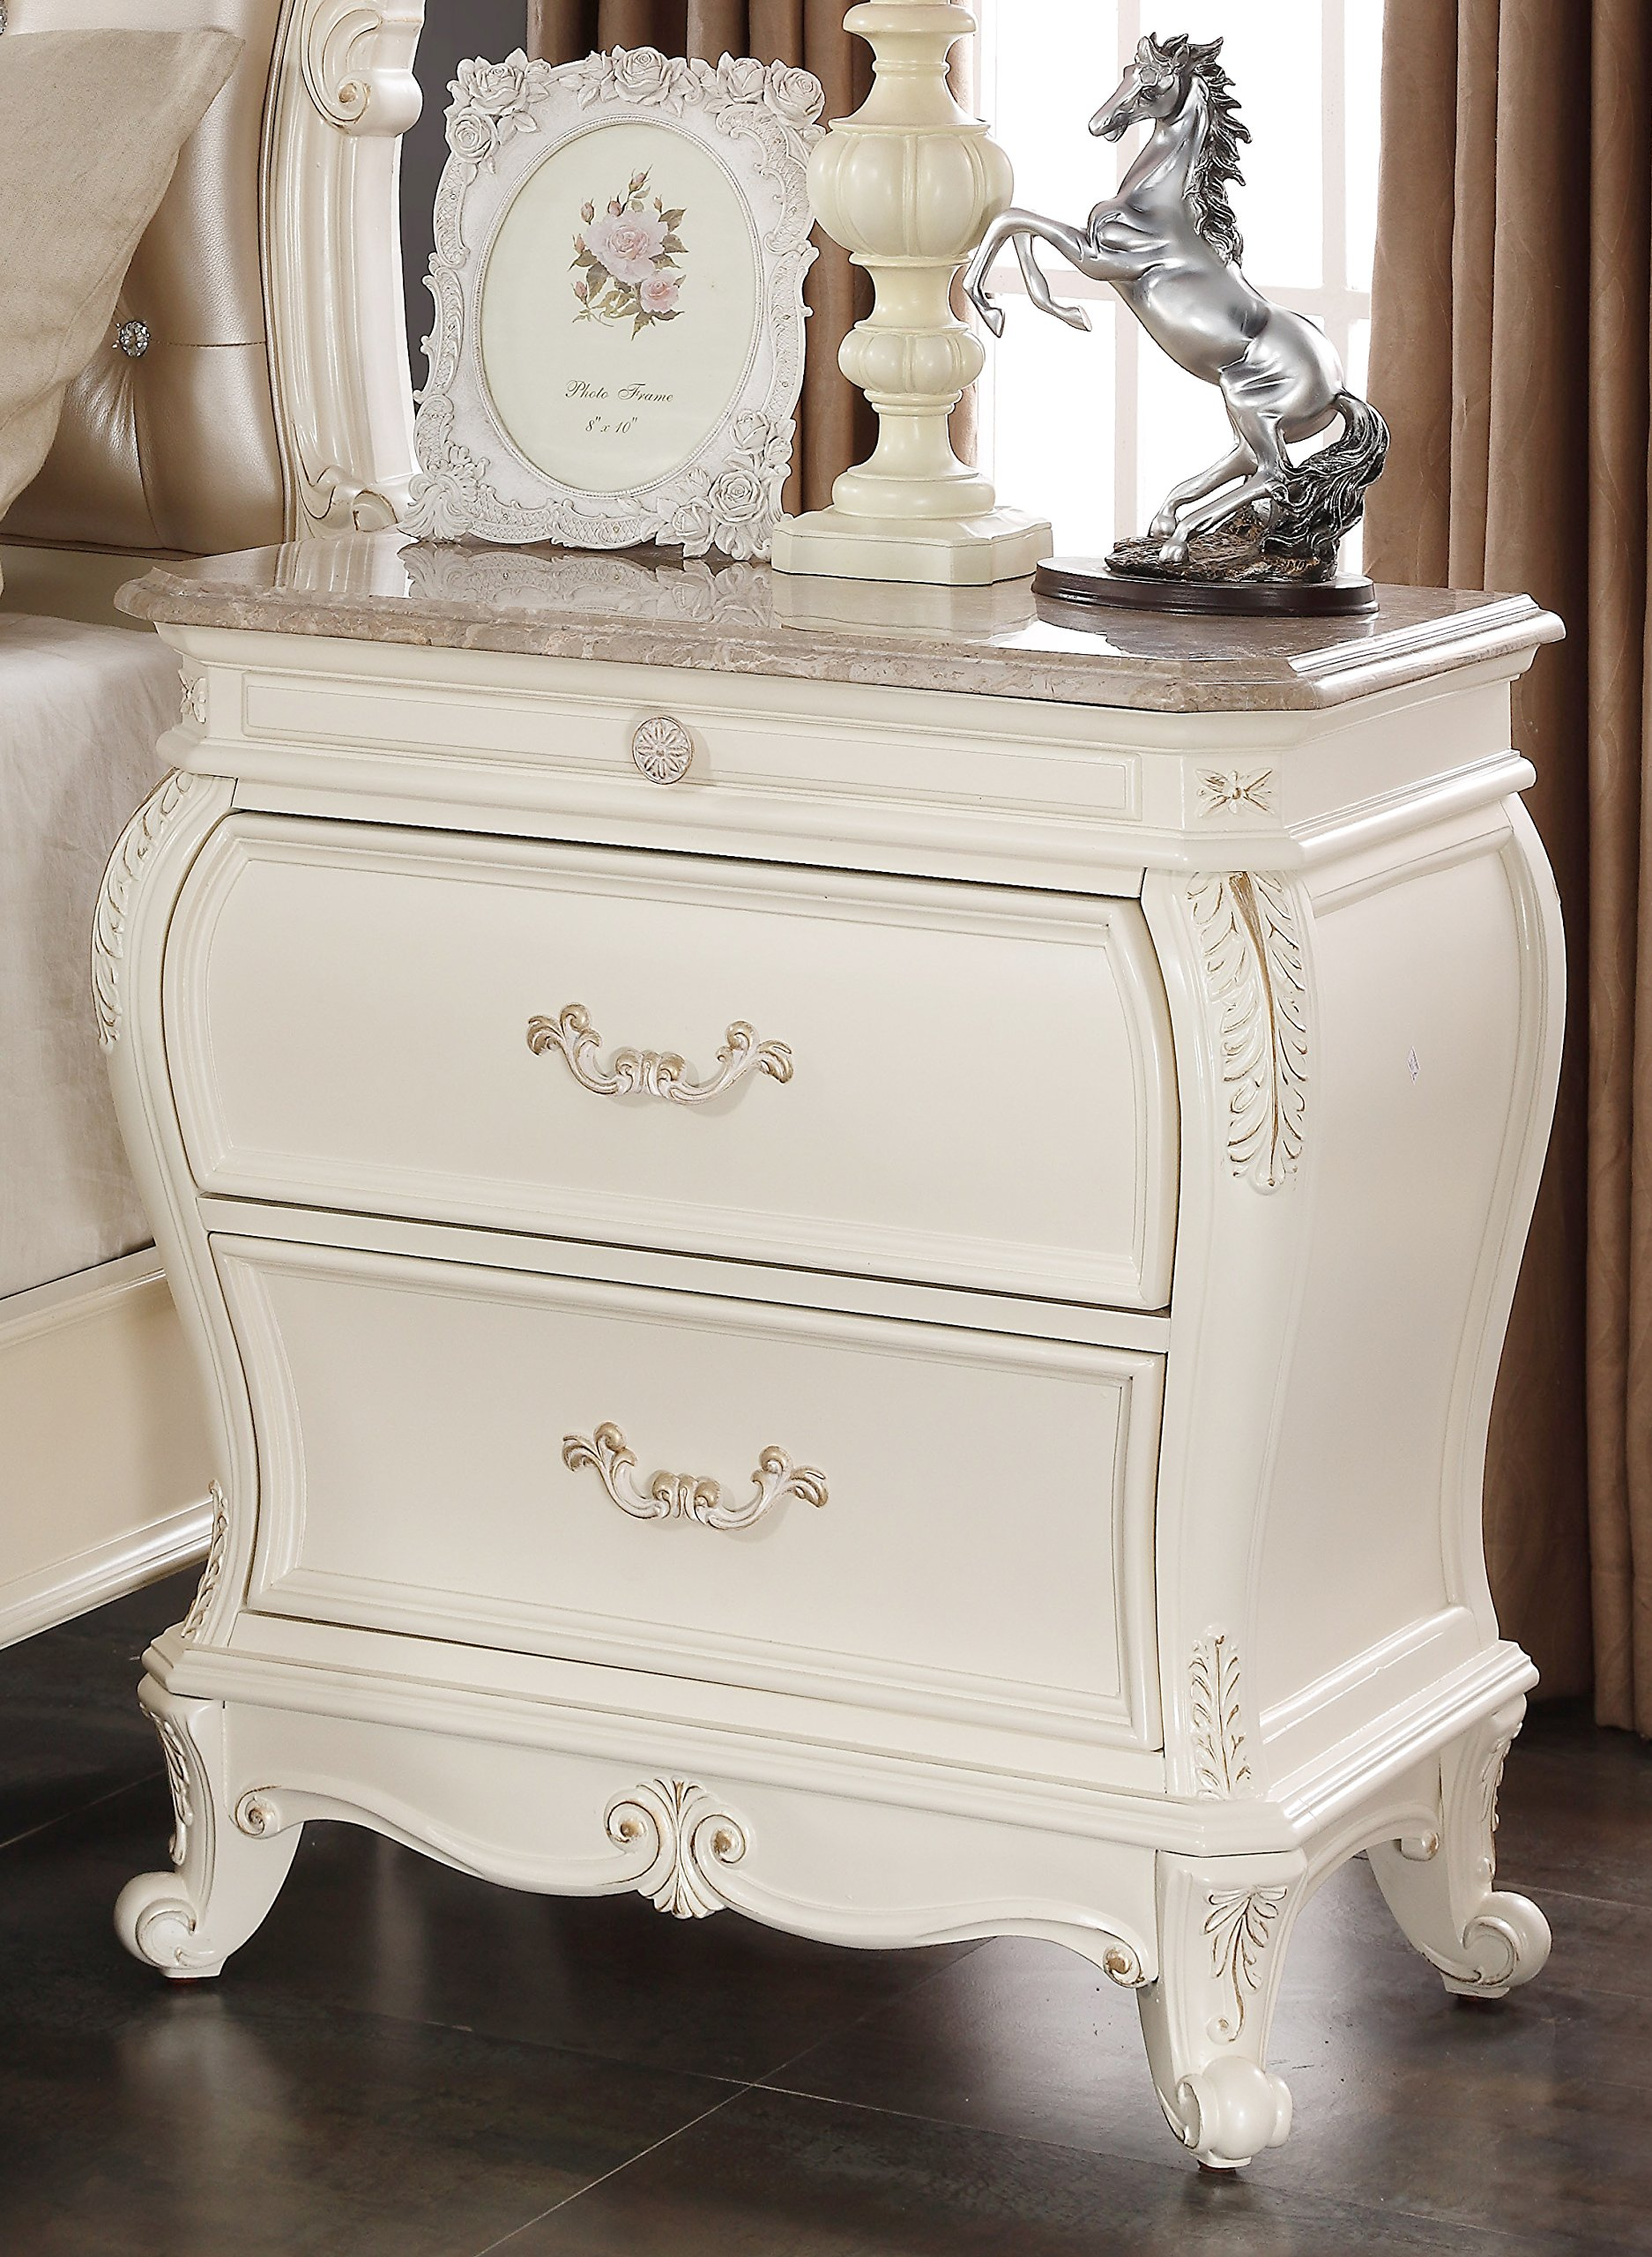 Meridian Furniture Marquee Solid Wood 2 Drawer Nightstand with Traditional Hand Carved Designs and Genuine Marble Top, Pearl White Finish With Gold Accents by Meridian Furniture